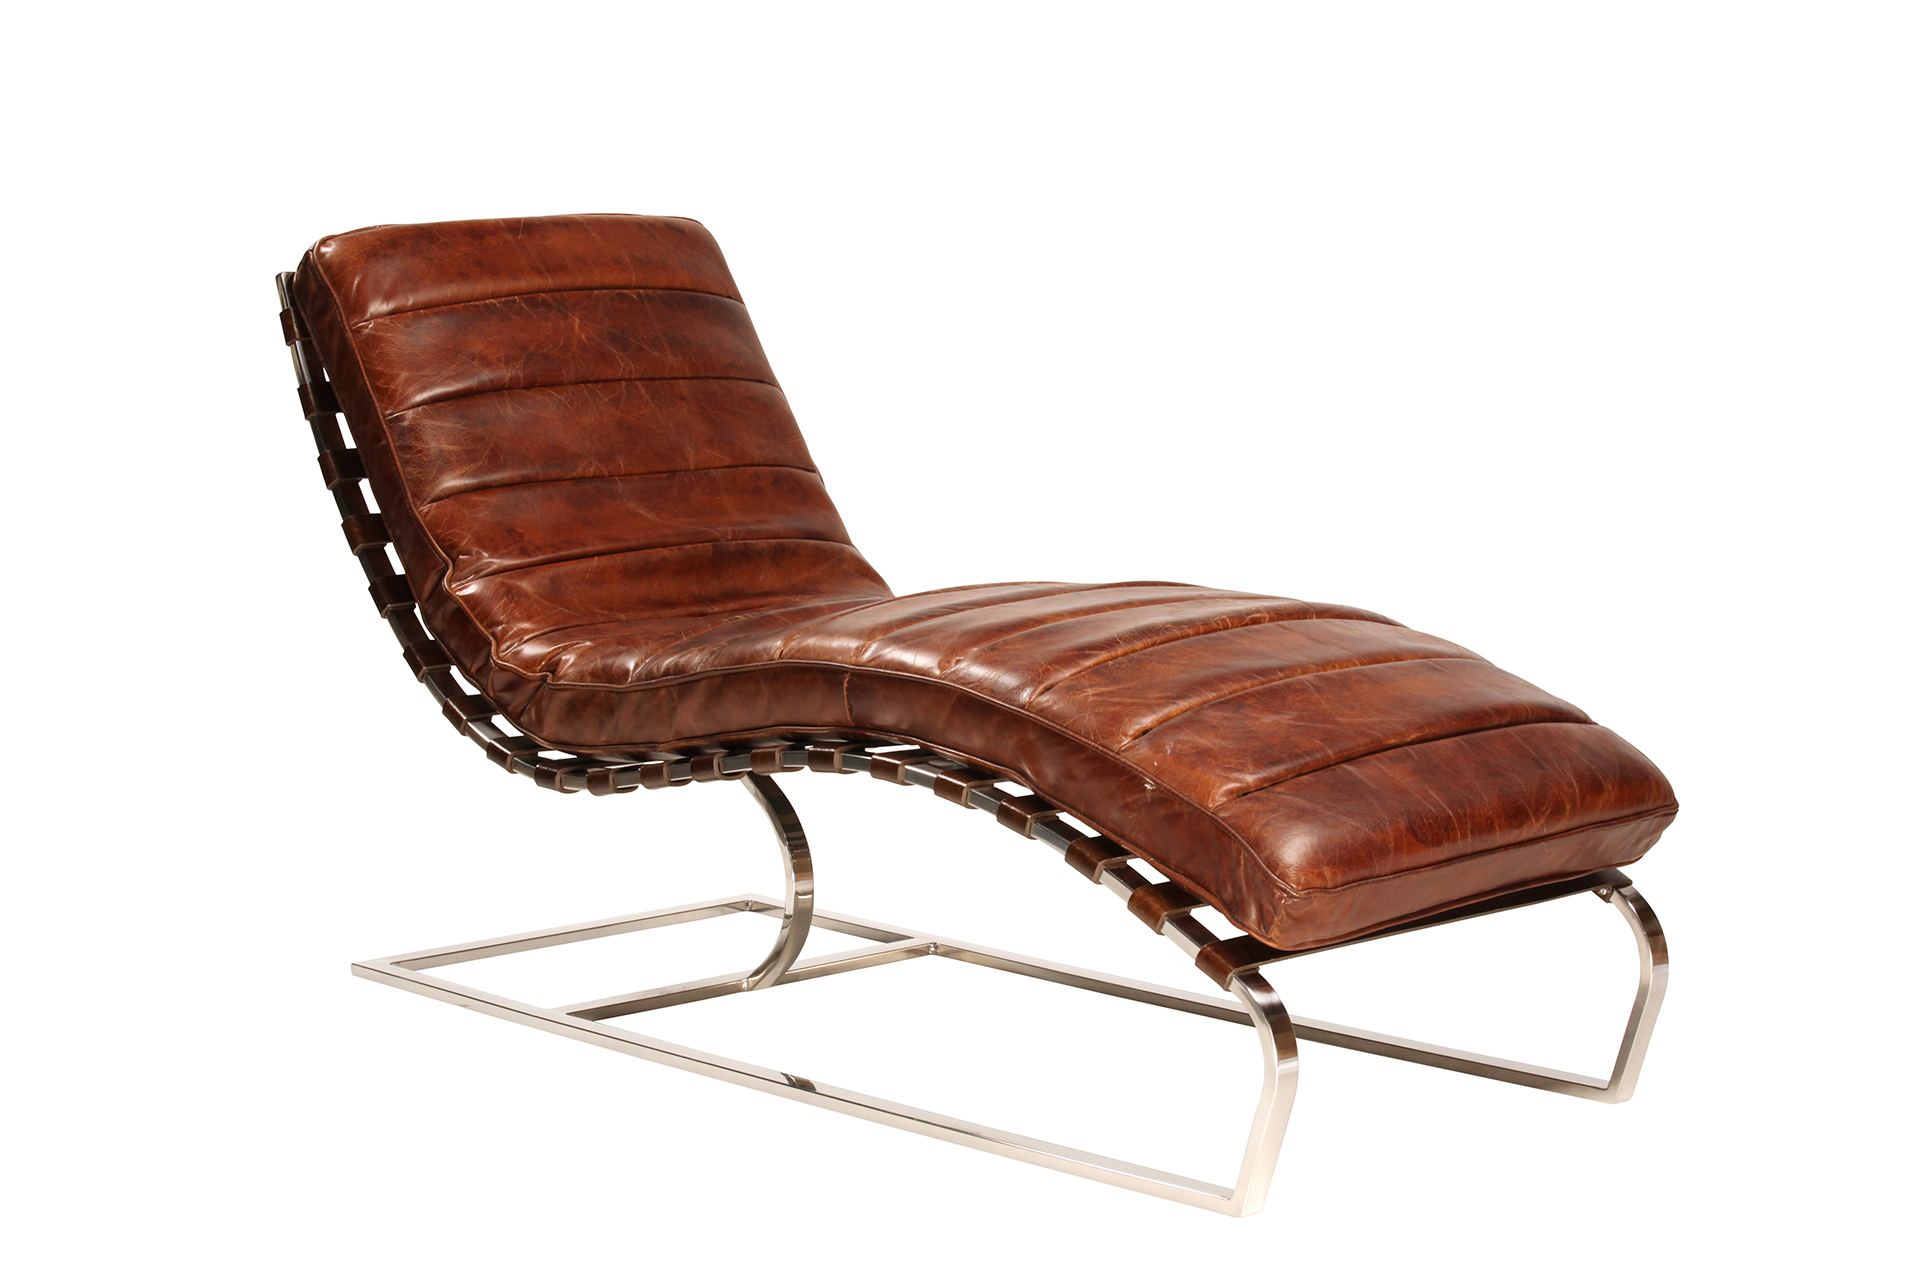 Cowhide Leather Chaise (Qty: 1) Has Been Successfully Added To Your Cart.